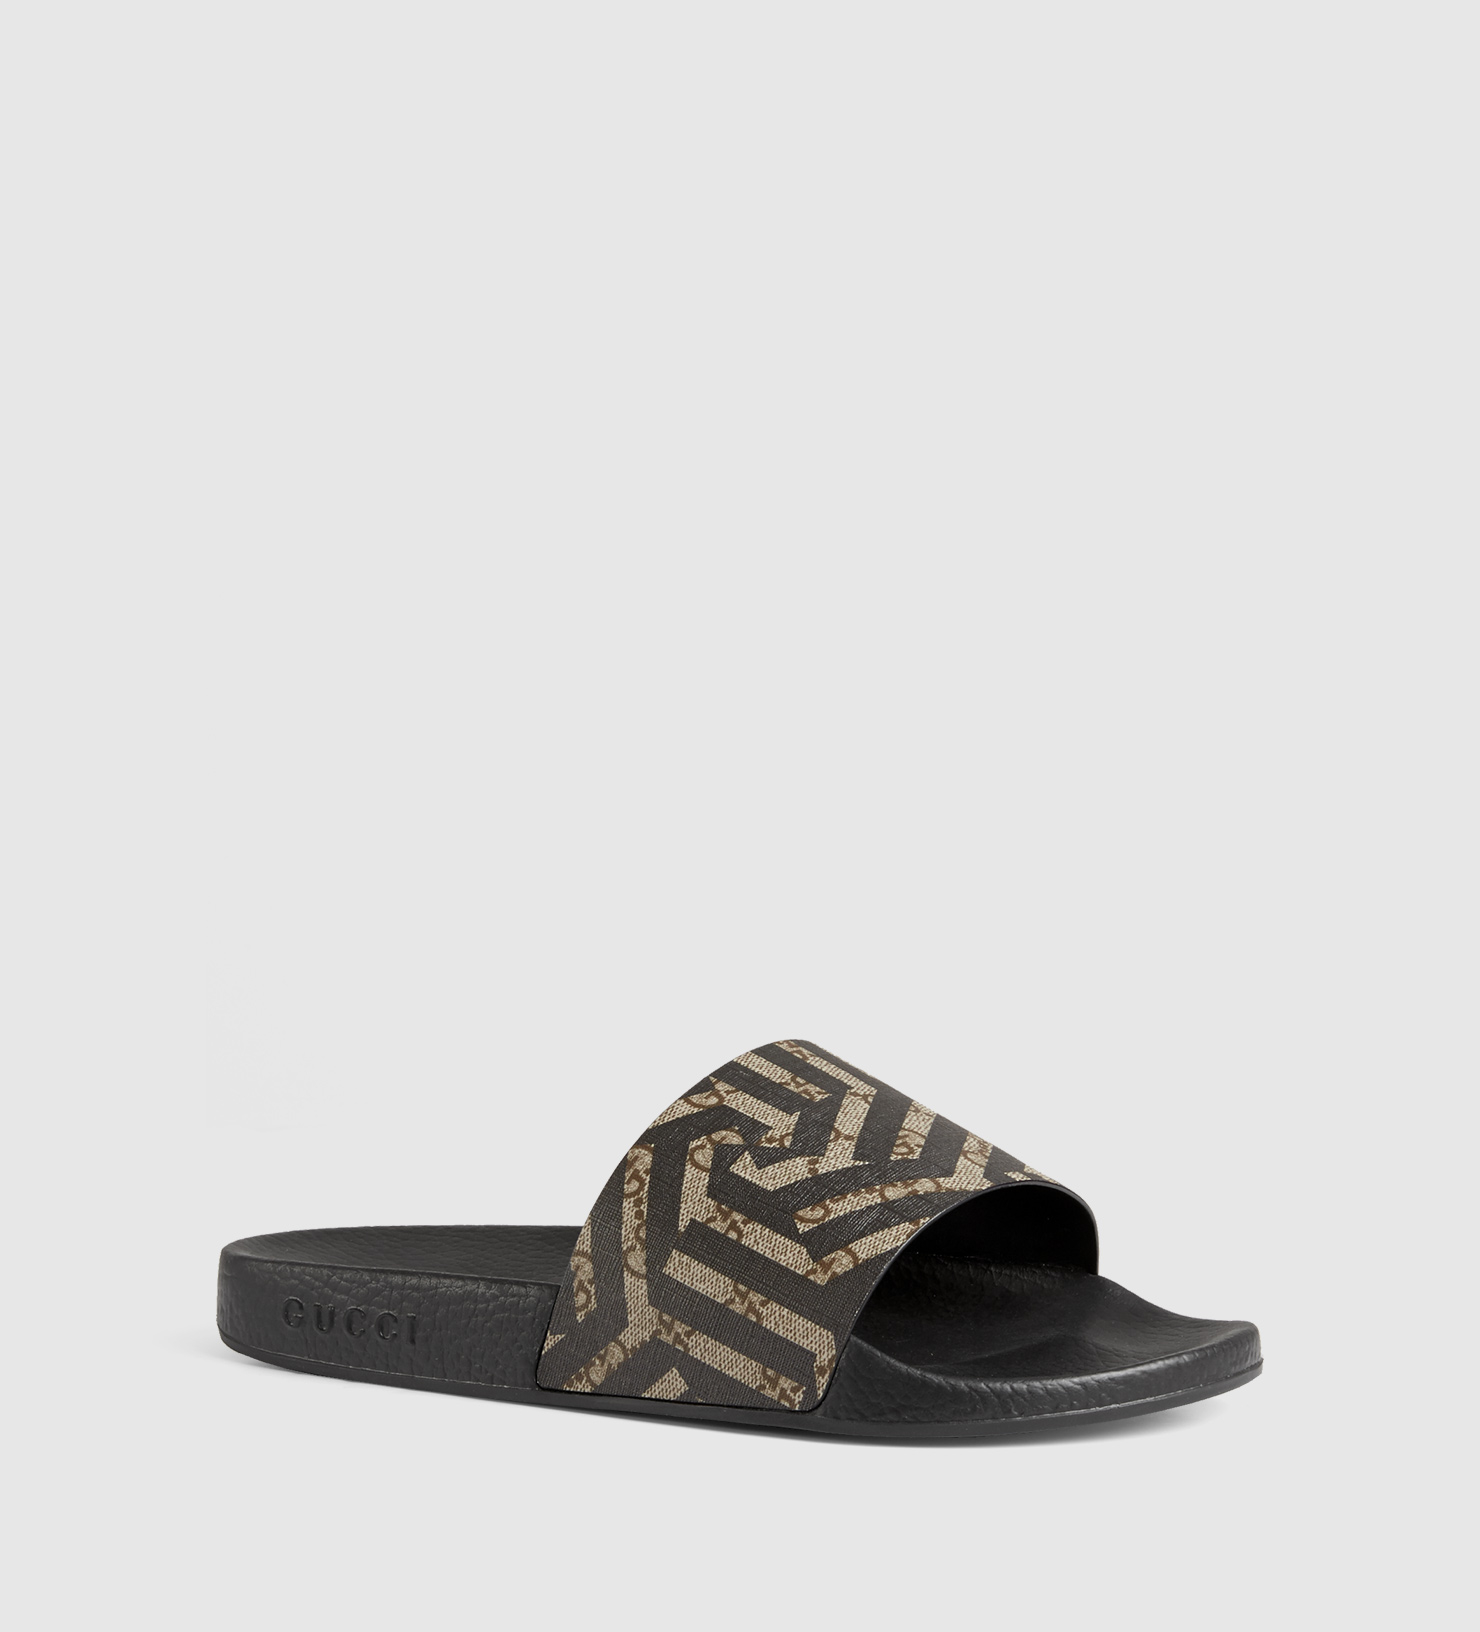 97827008b06 Gucci Gg Caleido Sandal in Brown for Men - Lyst